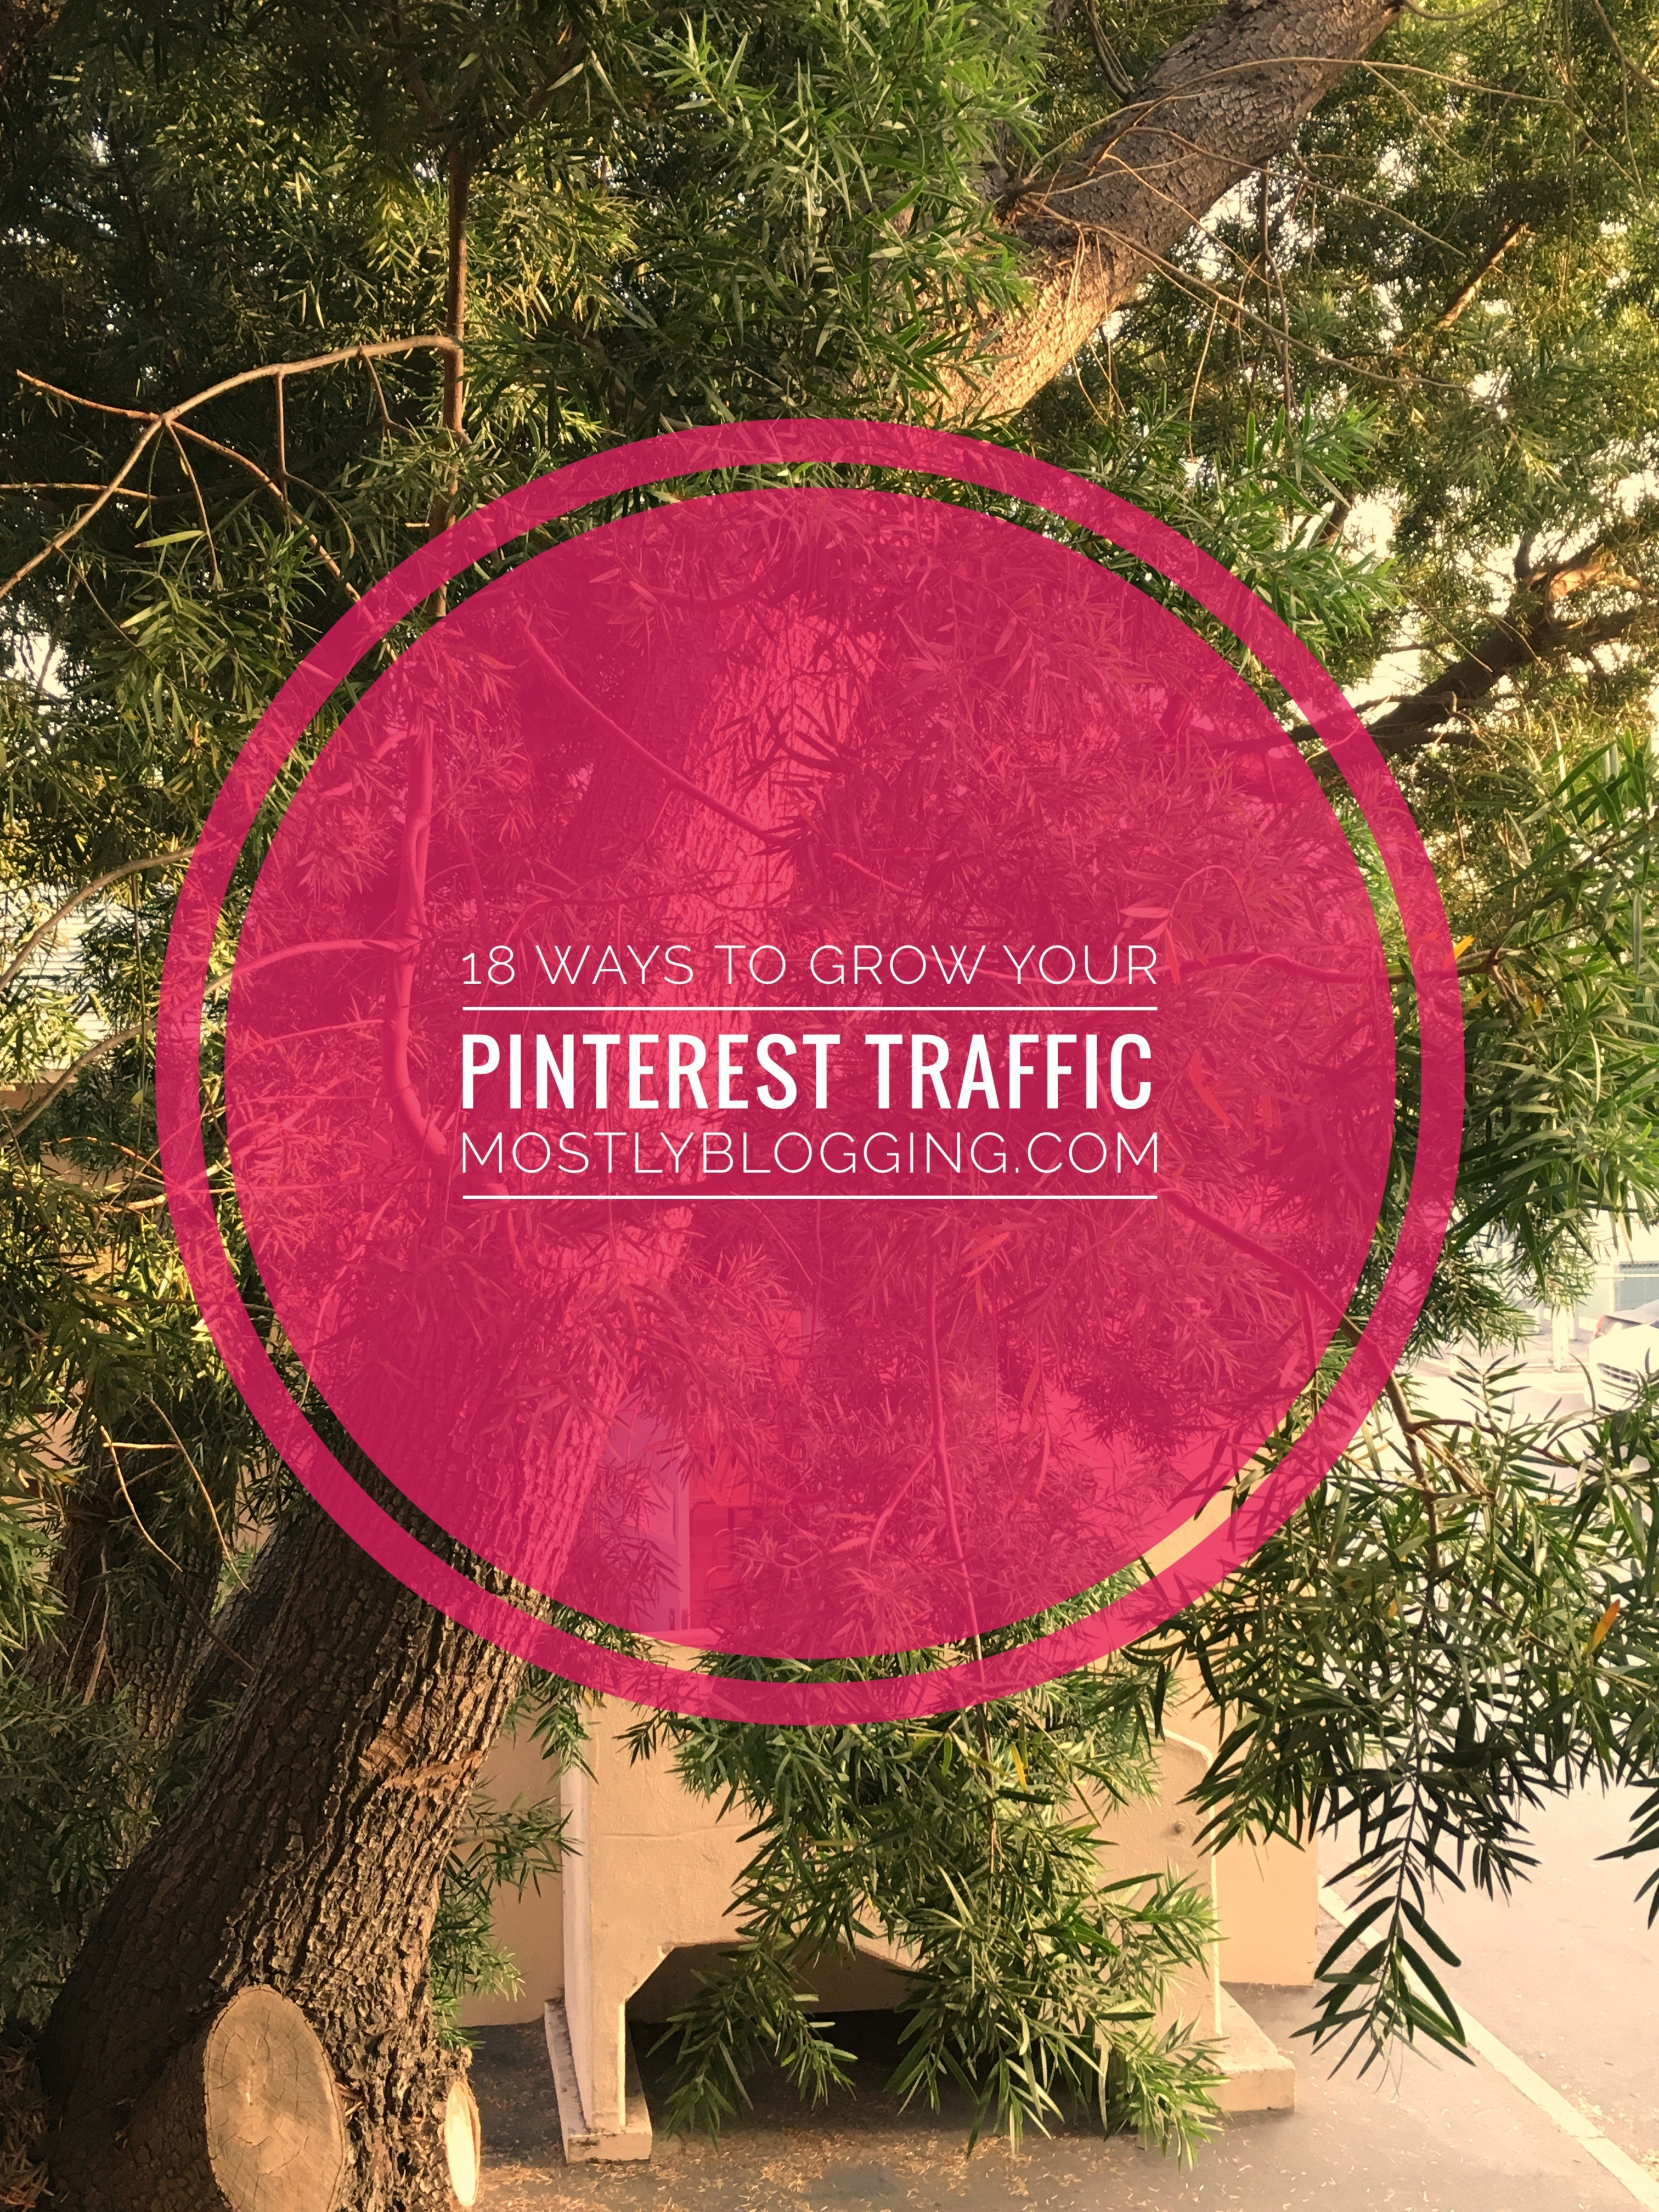 Boost Pinterest traffic with these 18 tips